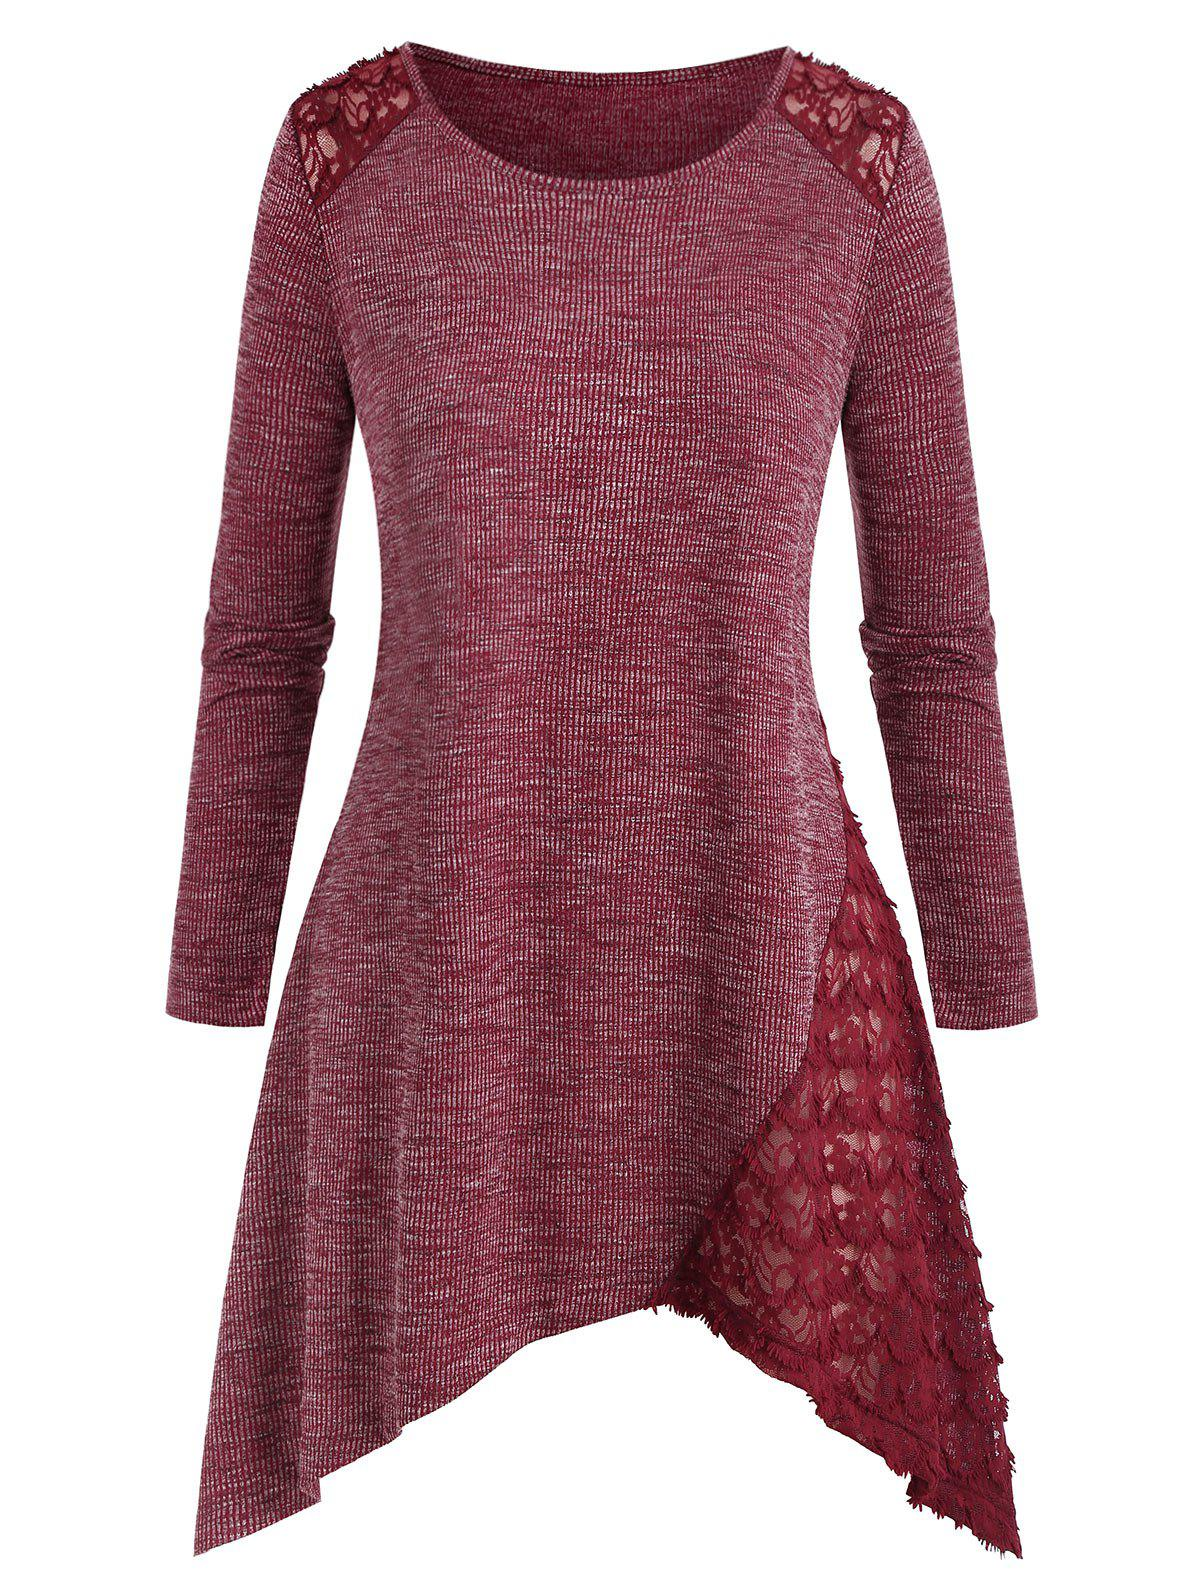 Plus Size Lace Insert Asymmetric Heathered Knitwear - RED WINE 5X